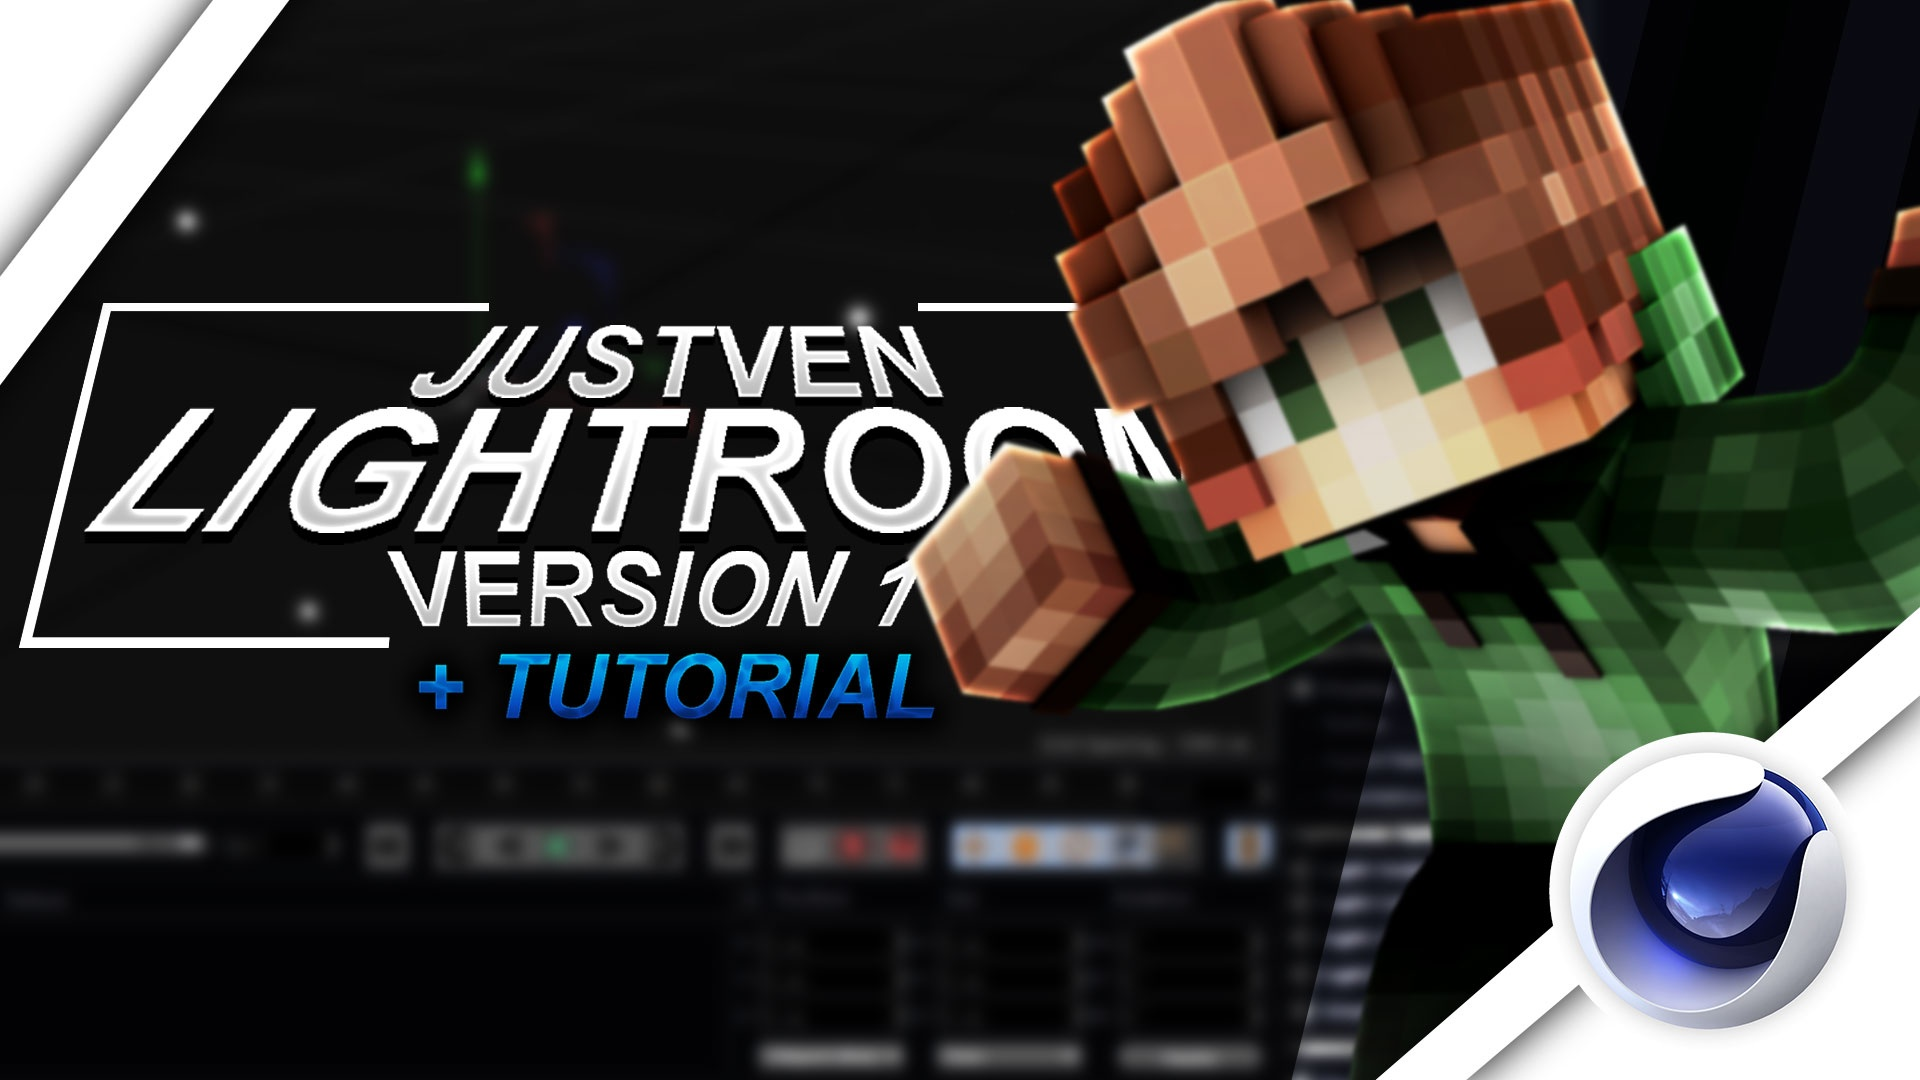 JustVen Lightroom V1